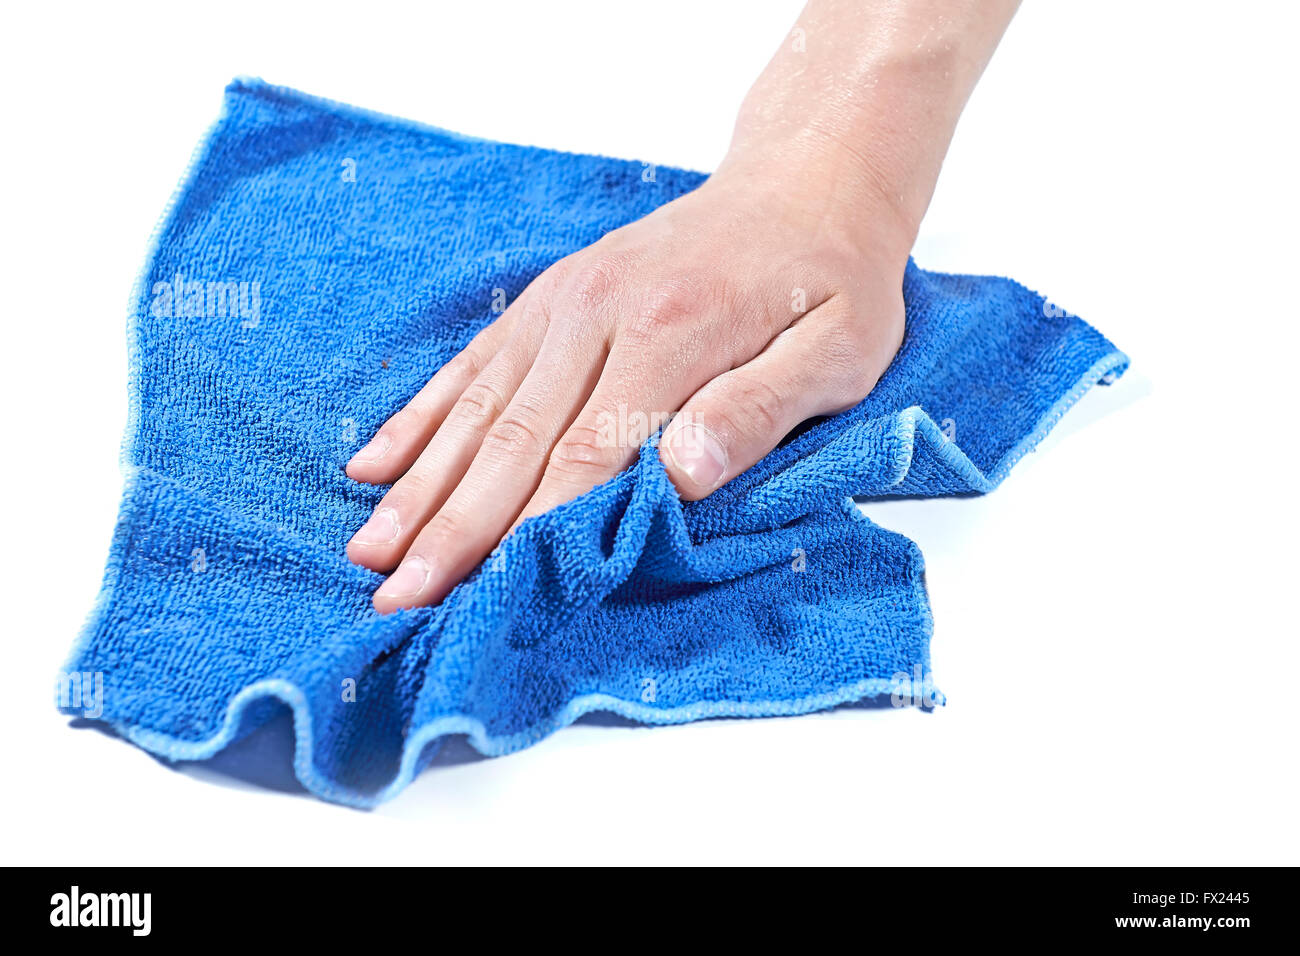 Cleaning surface with a blue microfiber cloth - Stock Image